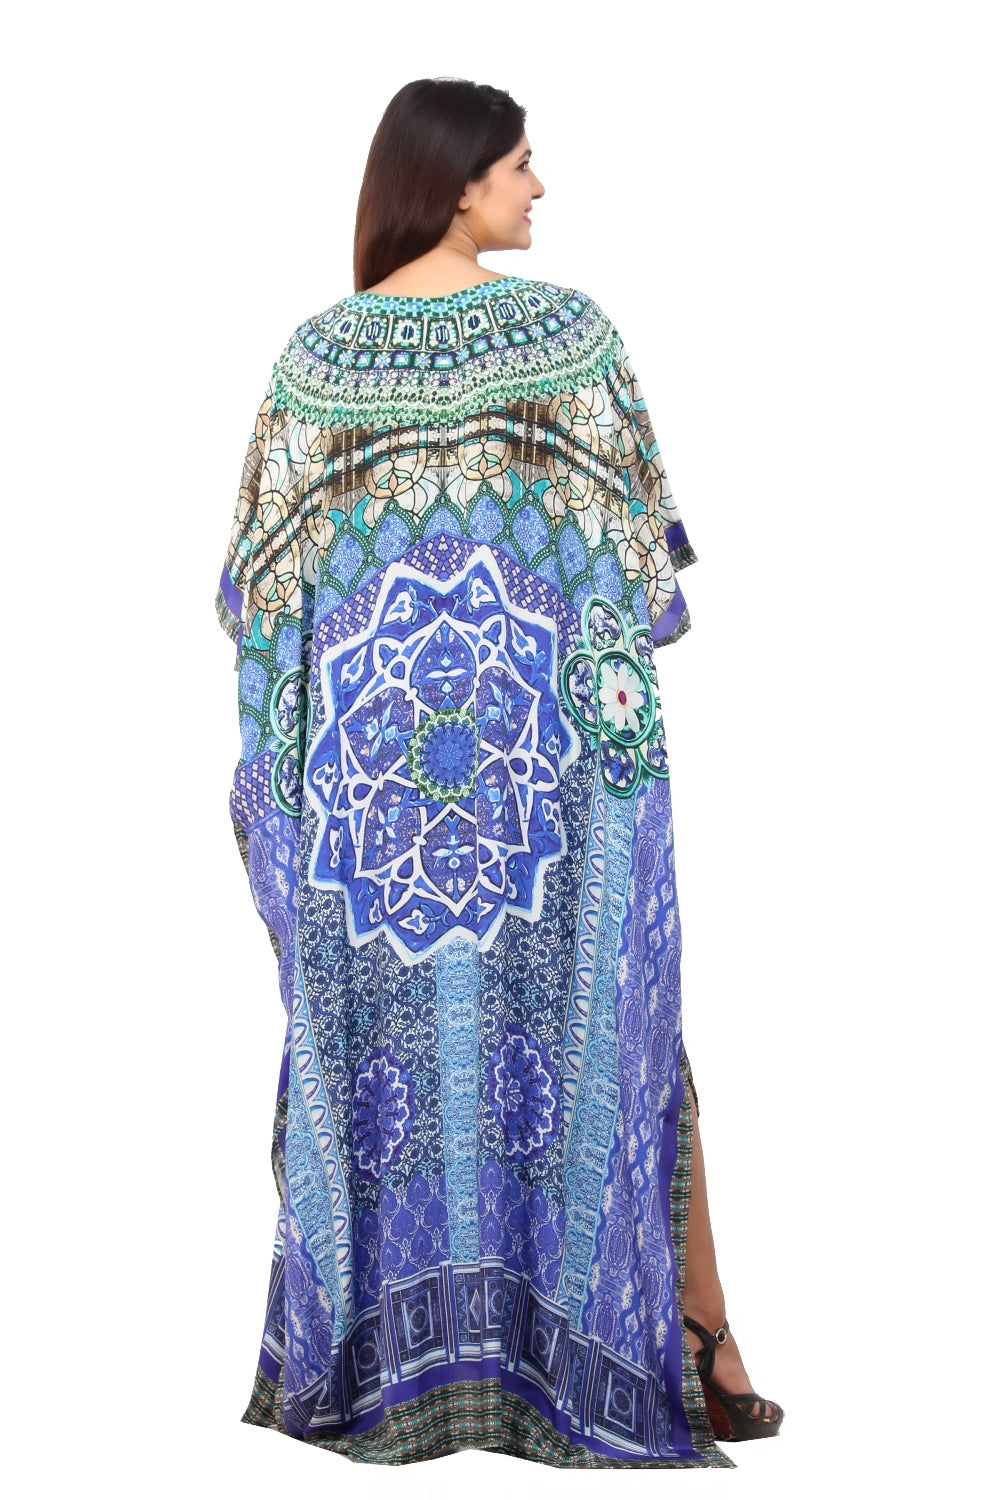 Bluish Geometric print Silk Kaftan gown with pearls embellishments and side cuts for evening galas - Silk kaftan